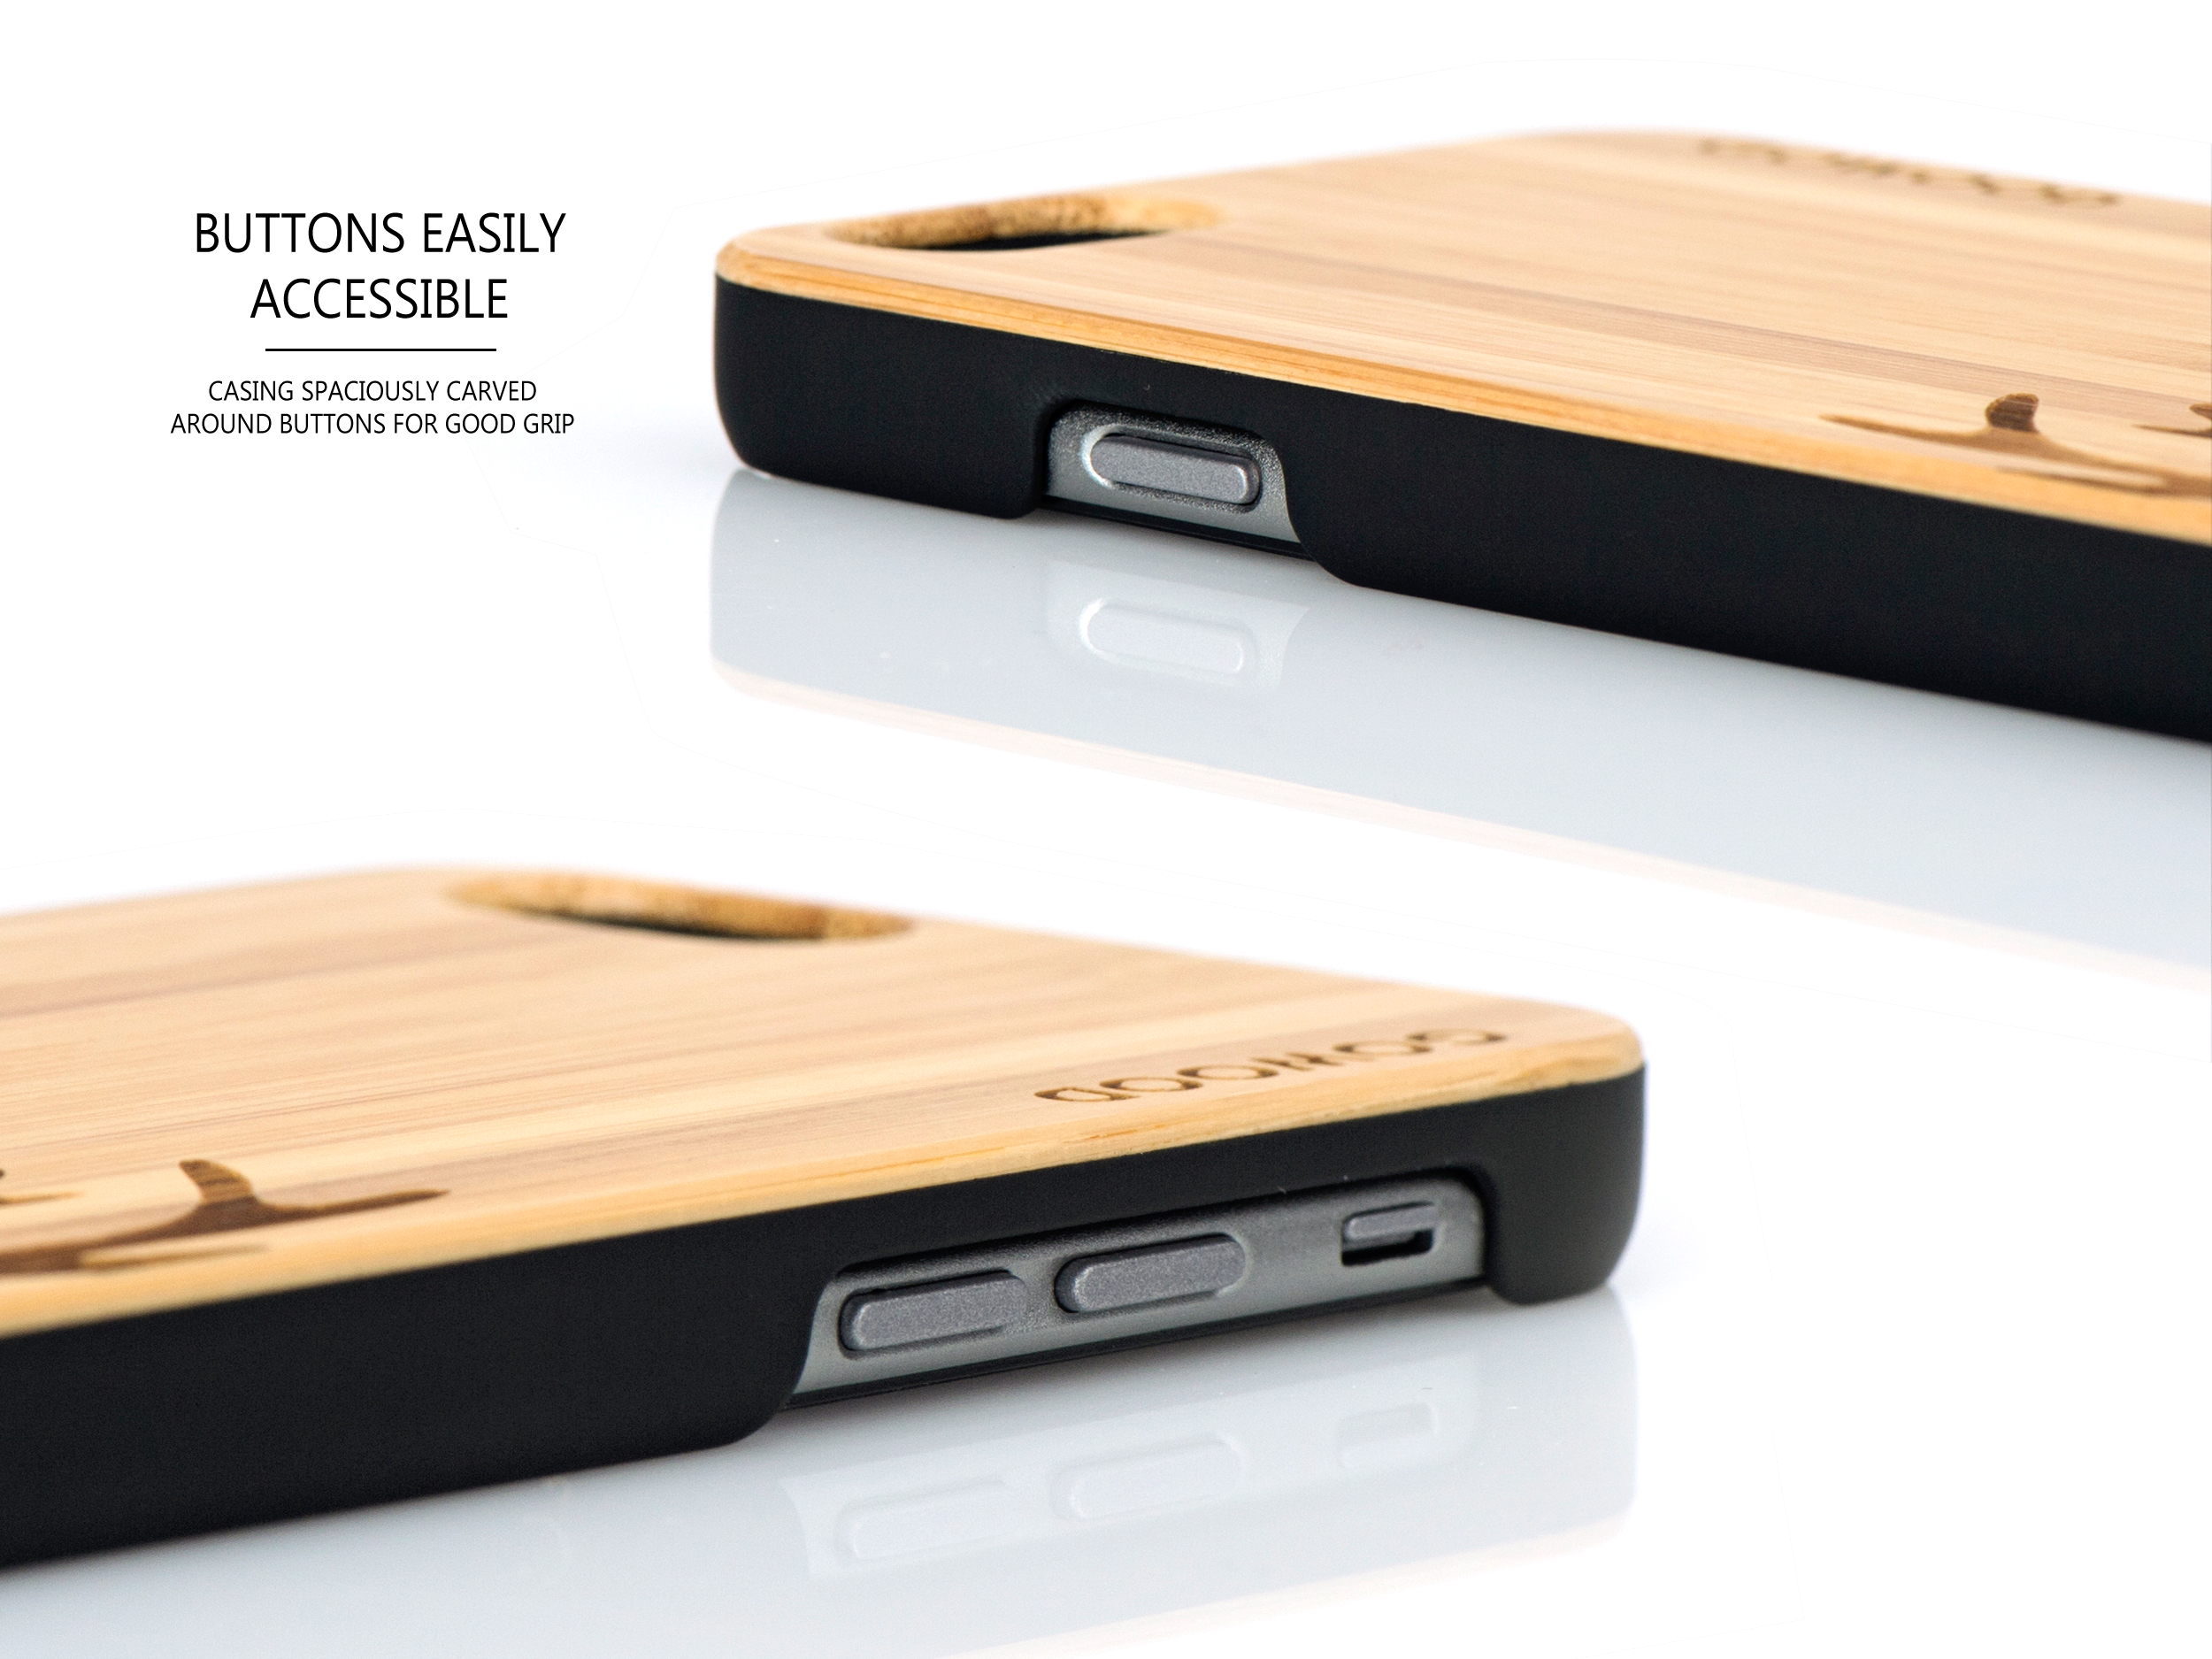 iPhone 6 case bamboo deer wood buttons